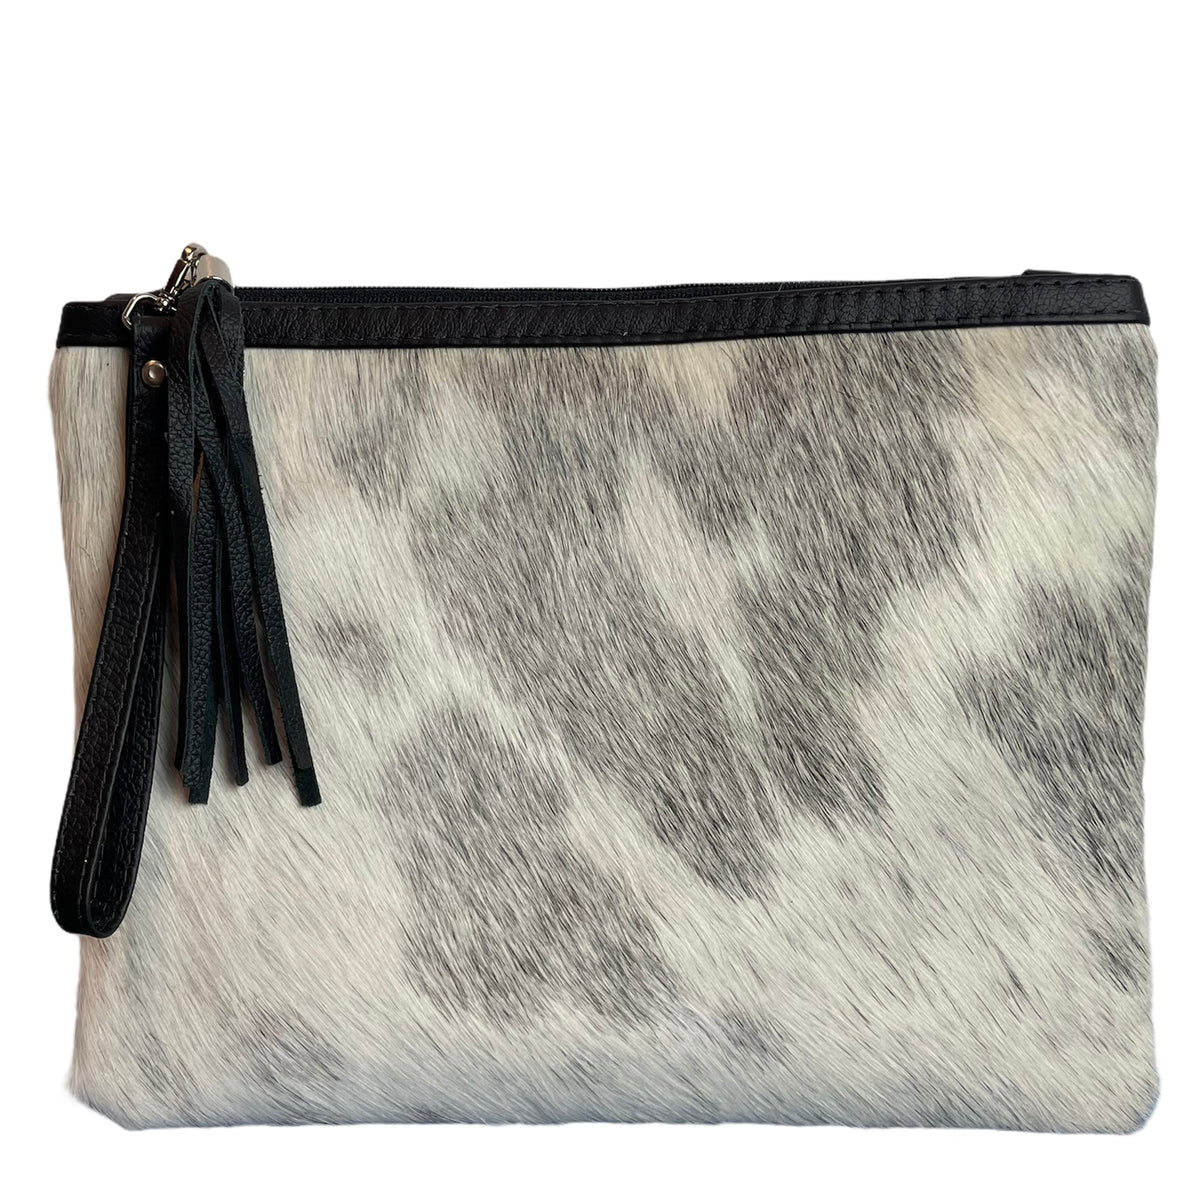 COWHIDE XL STATEMENT CLUTCH - GREY + WHITE. Izel Designs